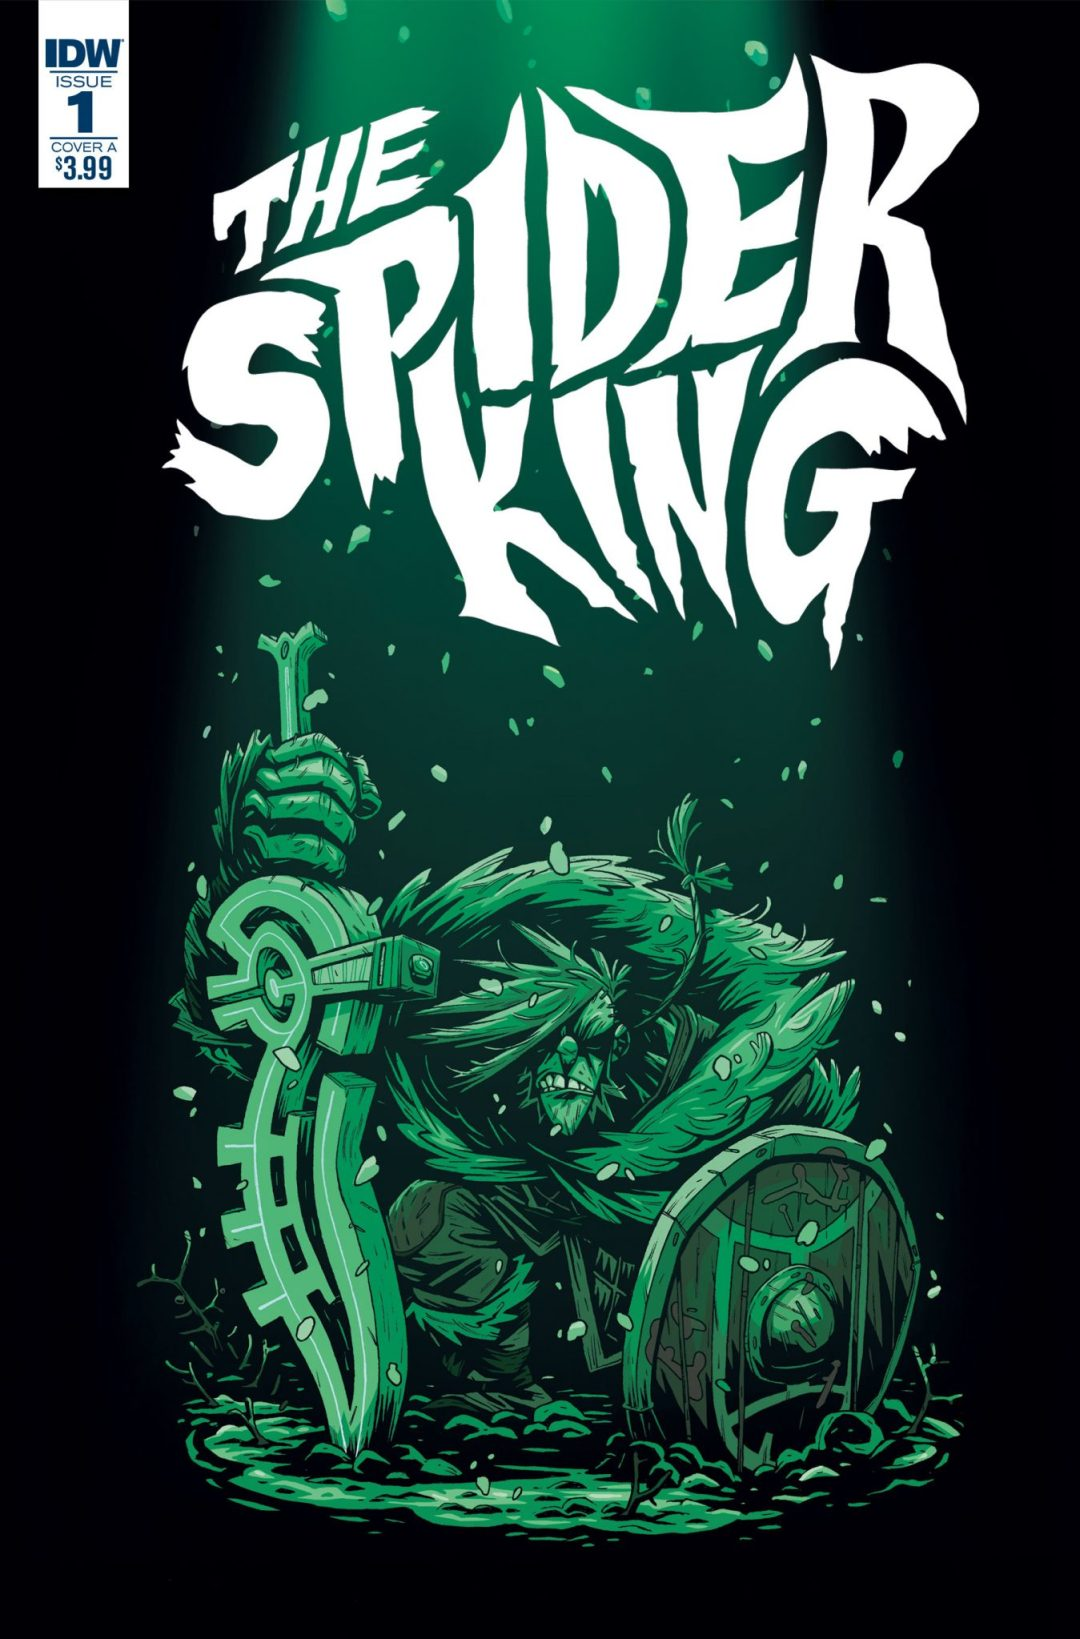 New Creator-Driven Series 'The Spider King' Debuts This February